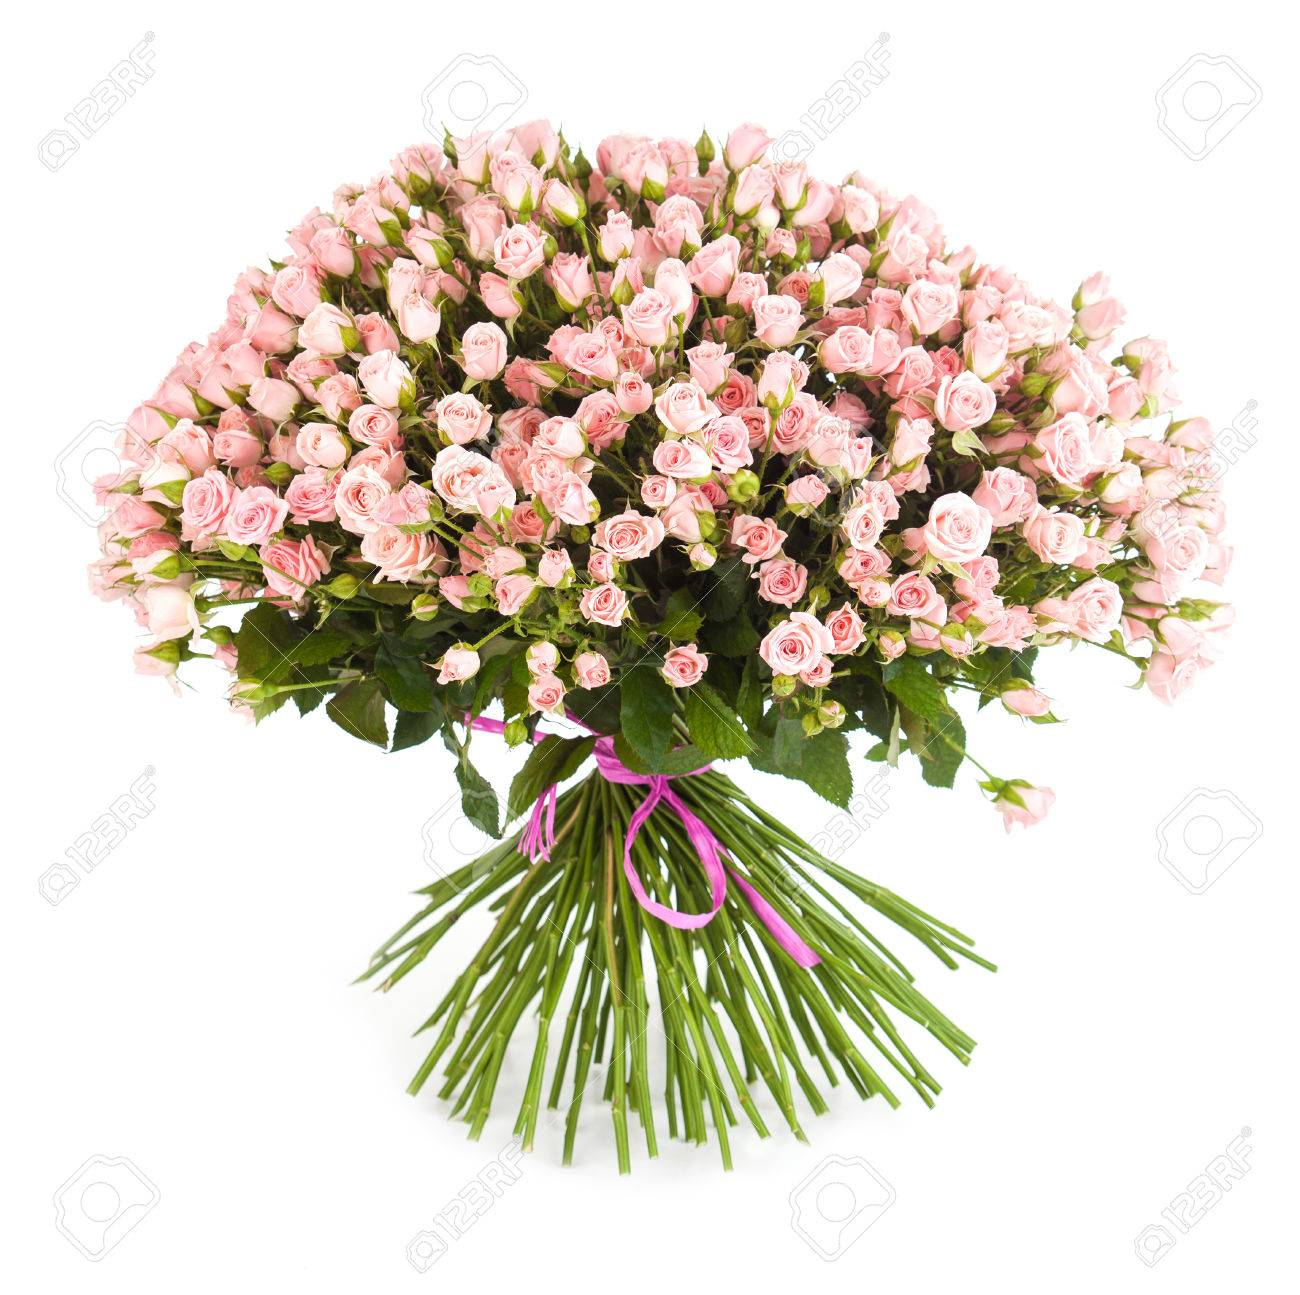 Big Flower Bouquet From Bright Pink Roses Isolated On White